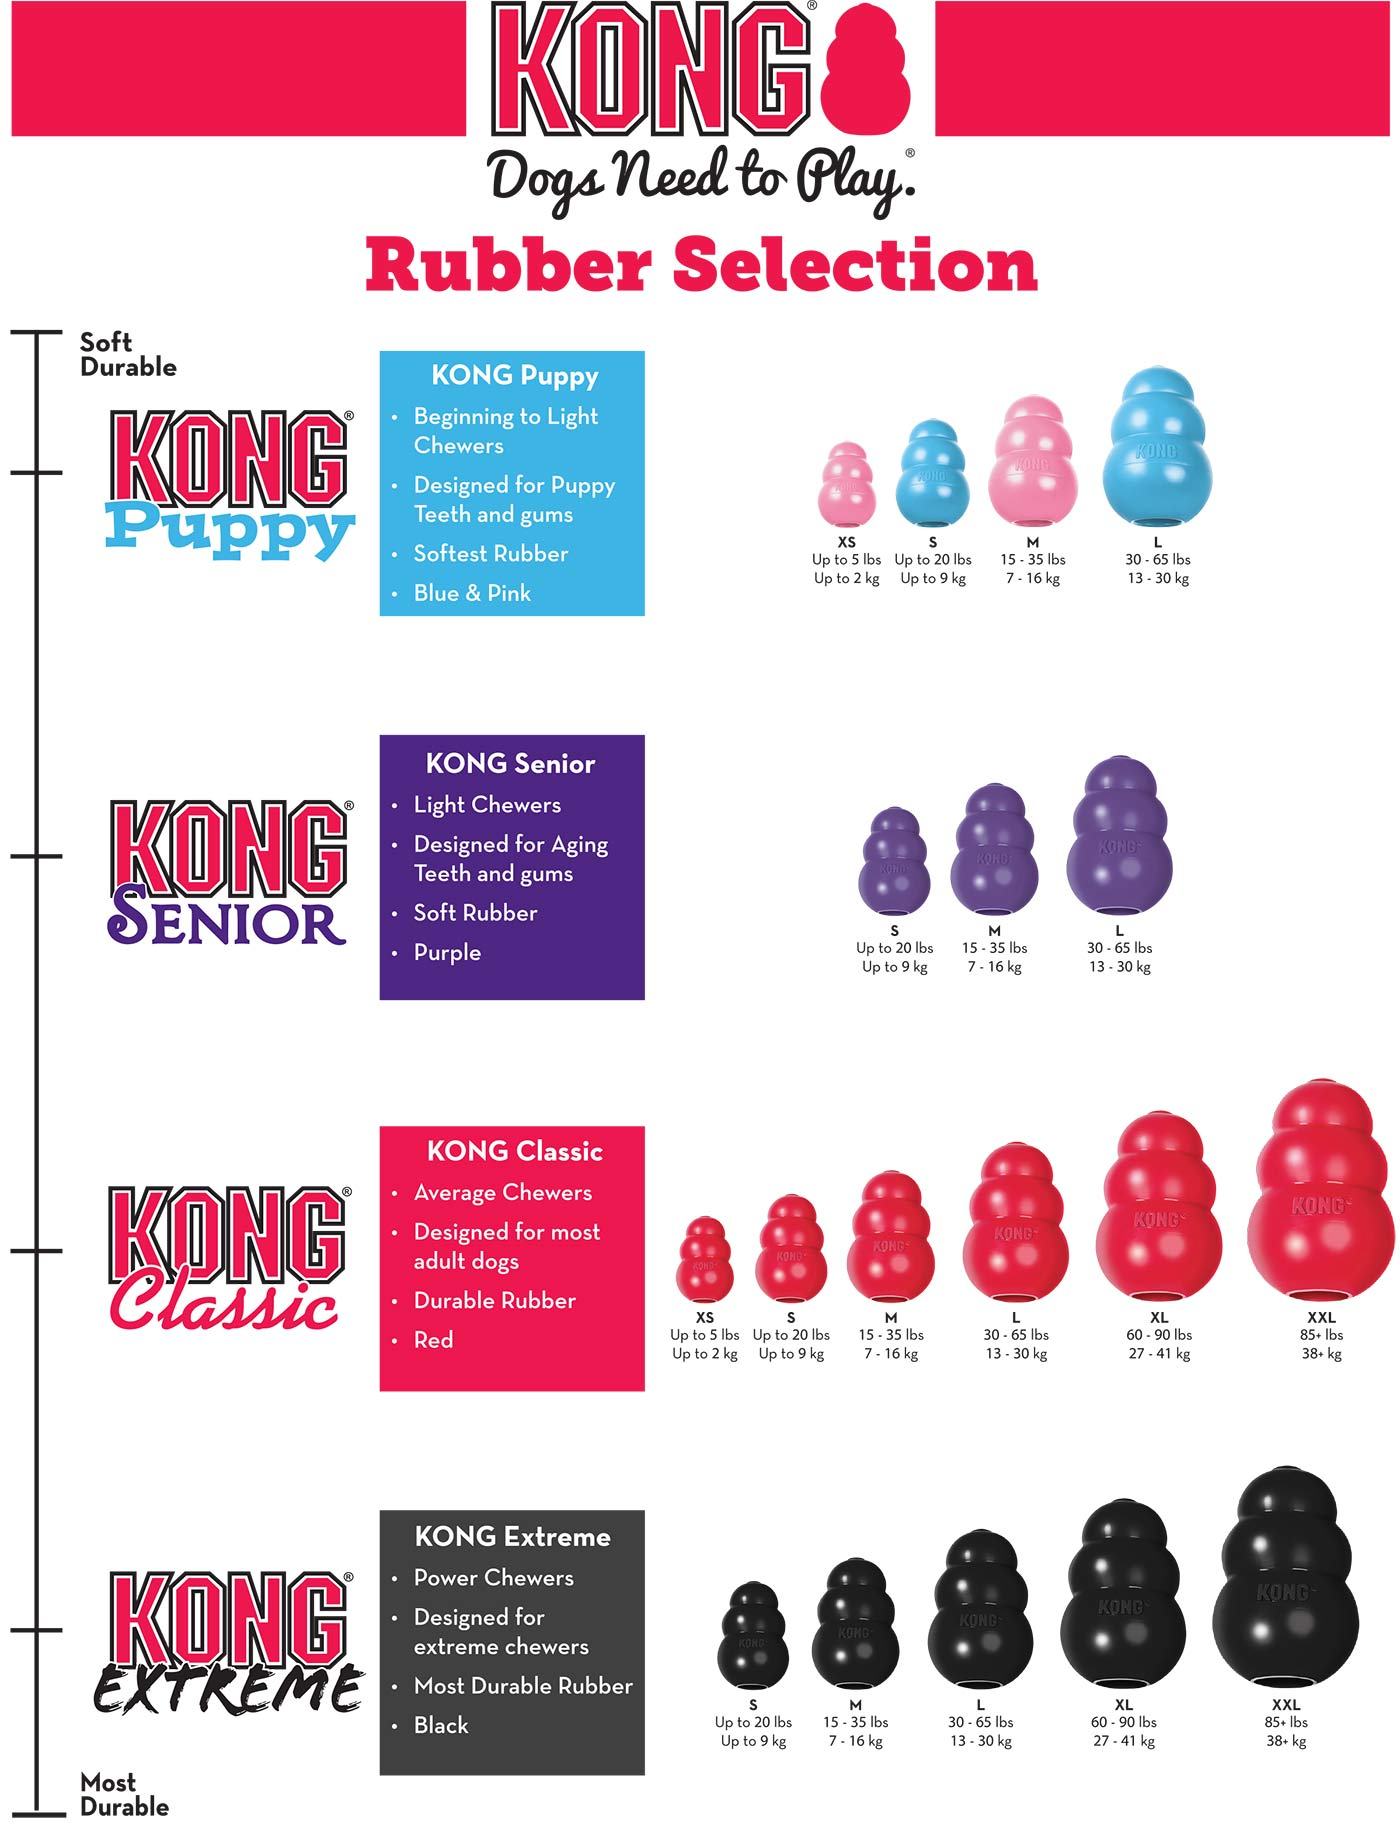 KONG rubber selection